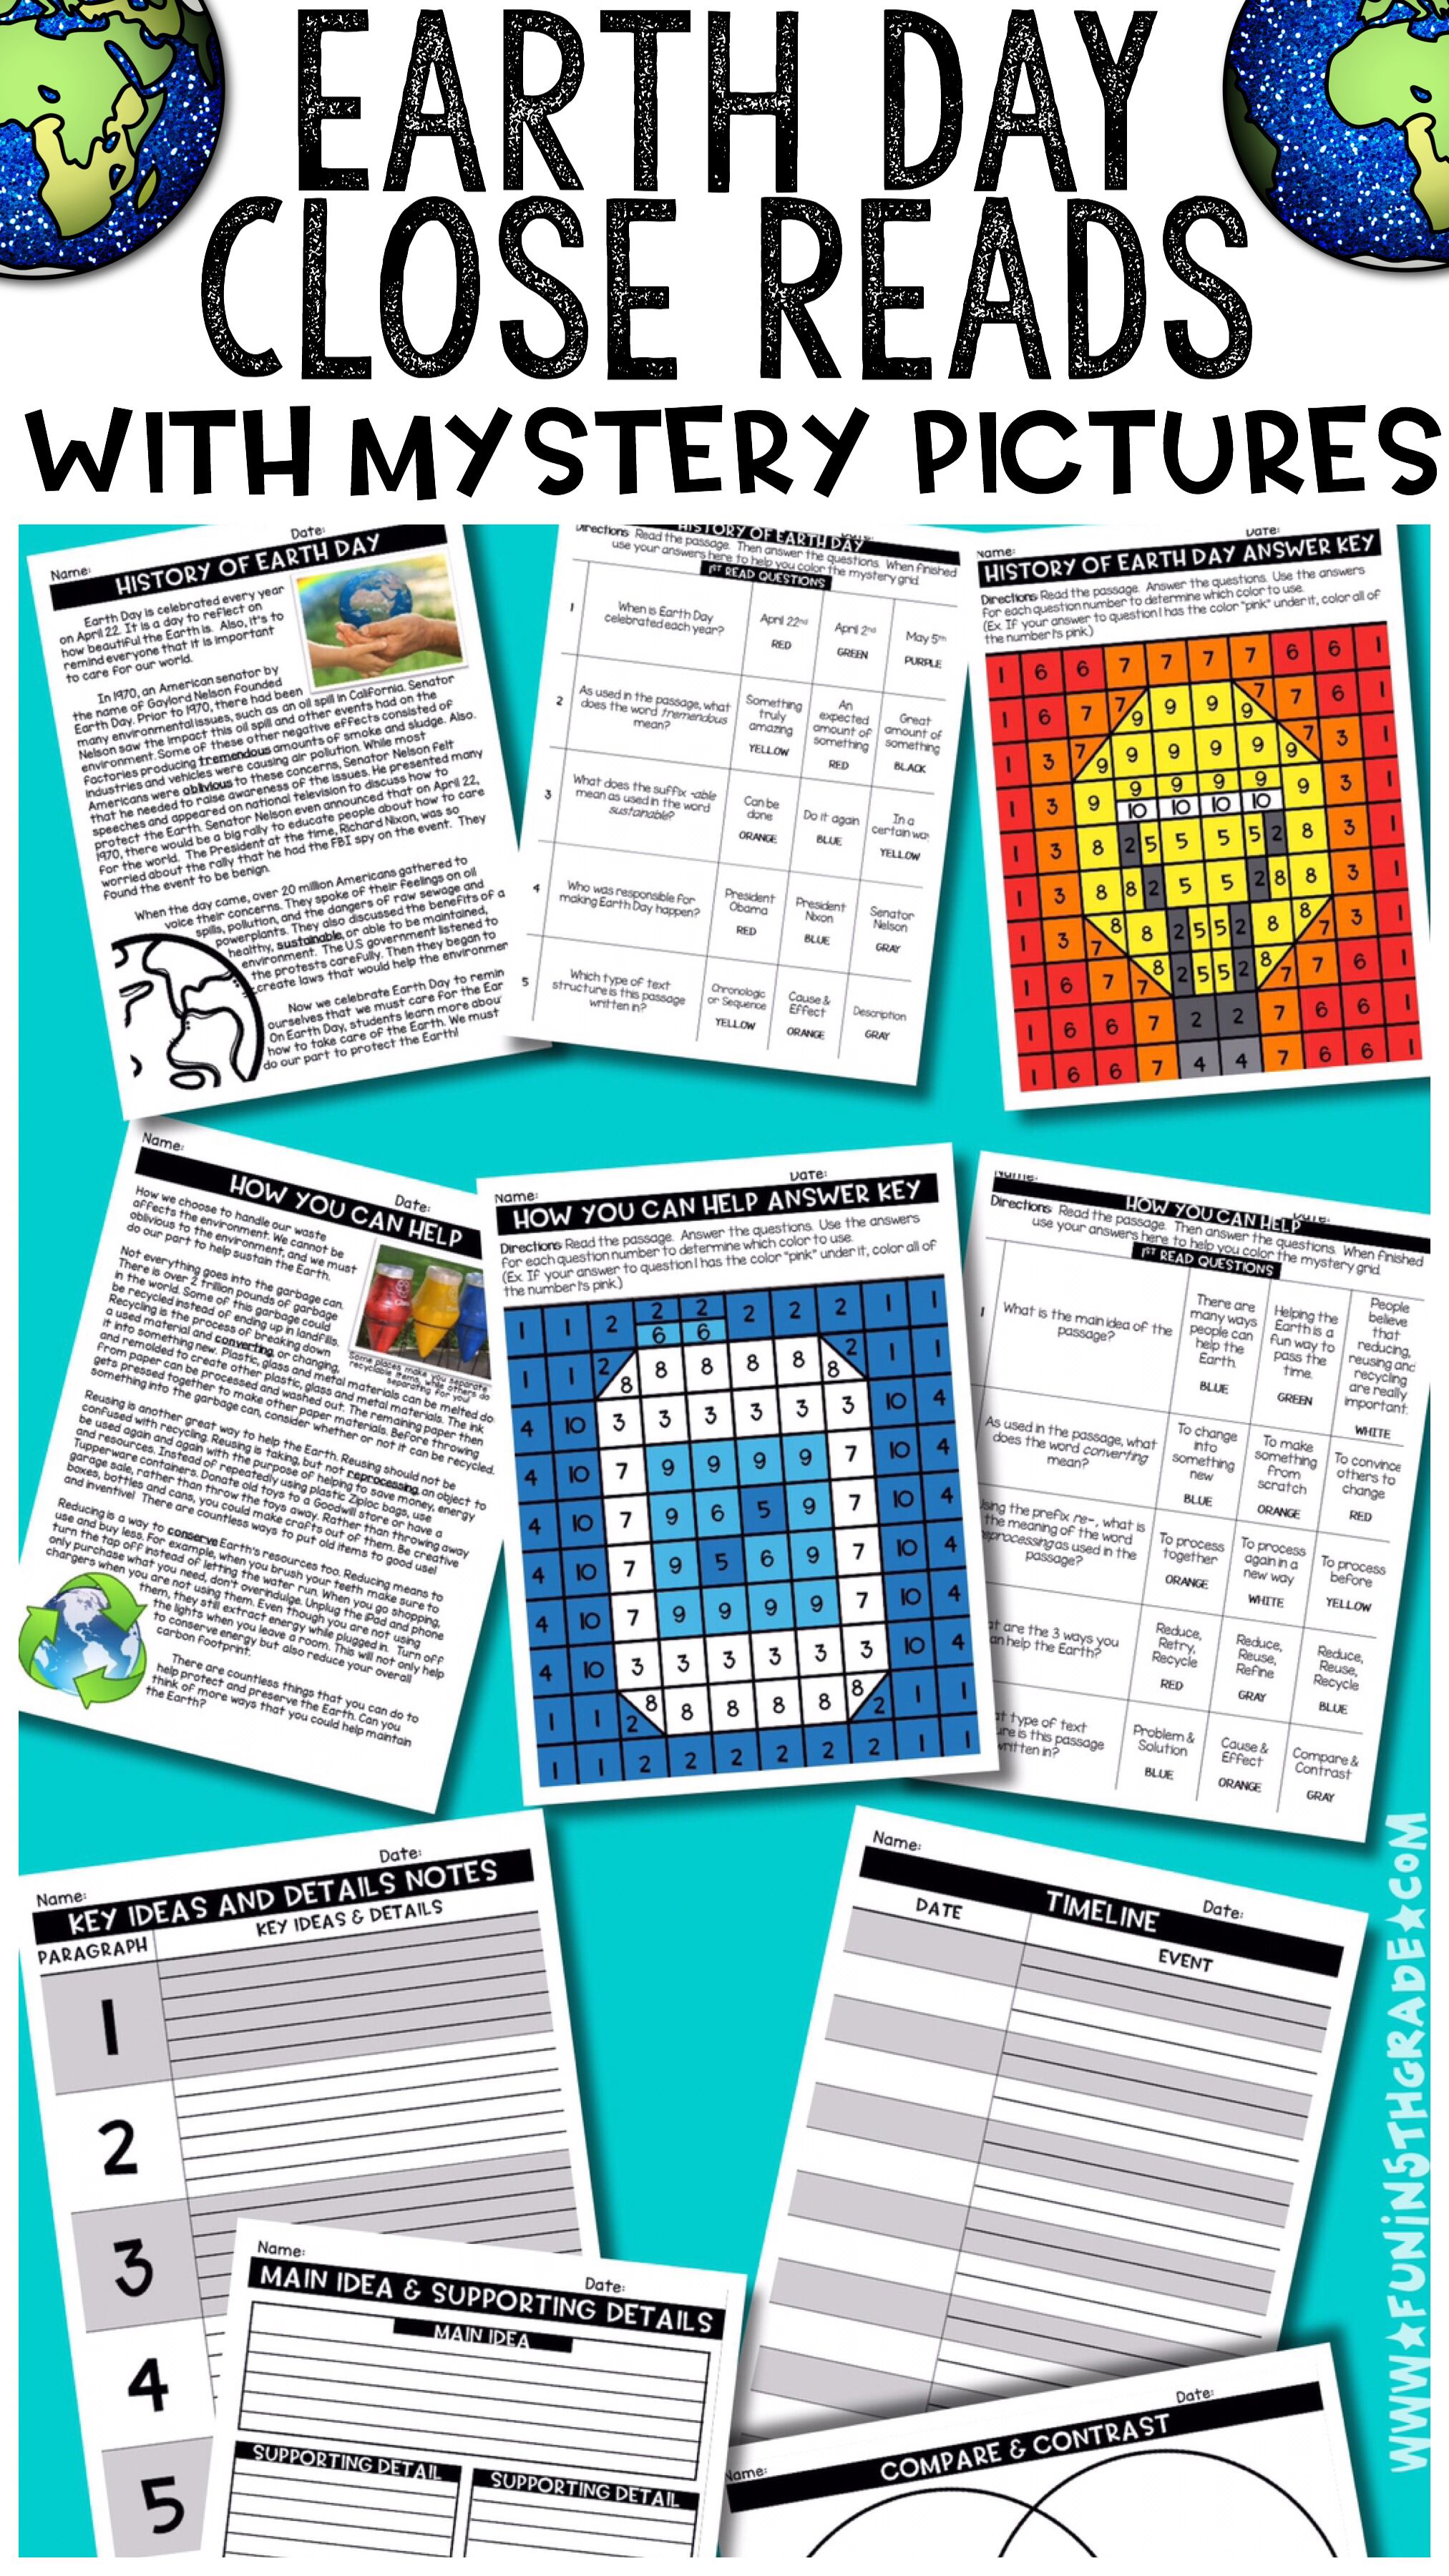 Earth Day Close Reads w/ Mystery Picture Activity for Grades 3-6 ...